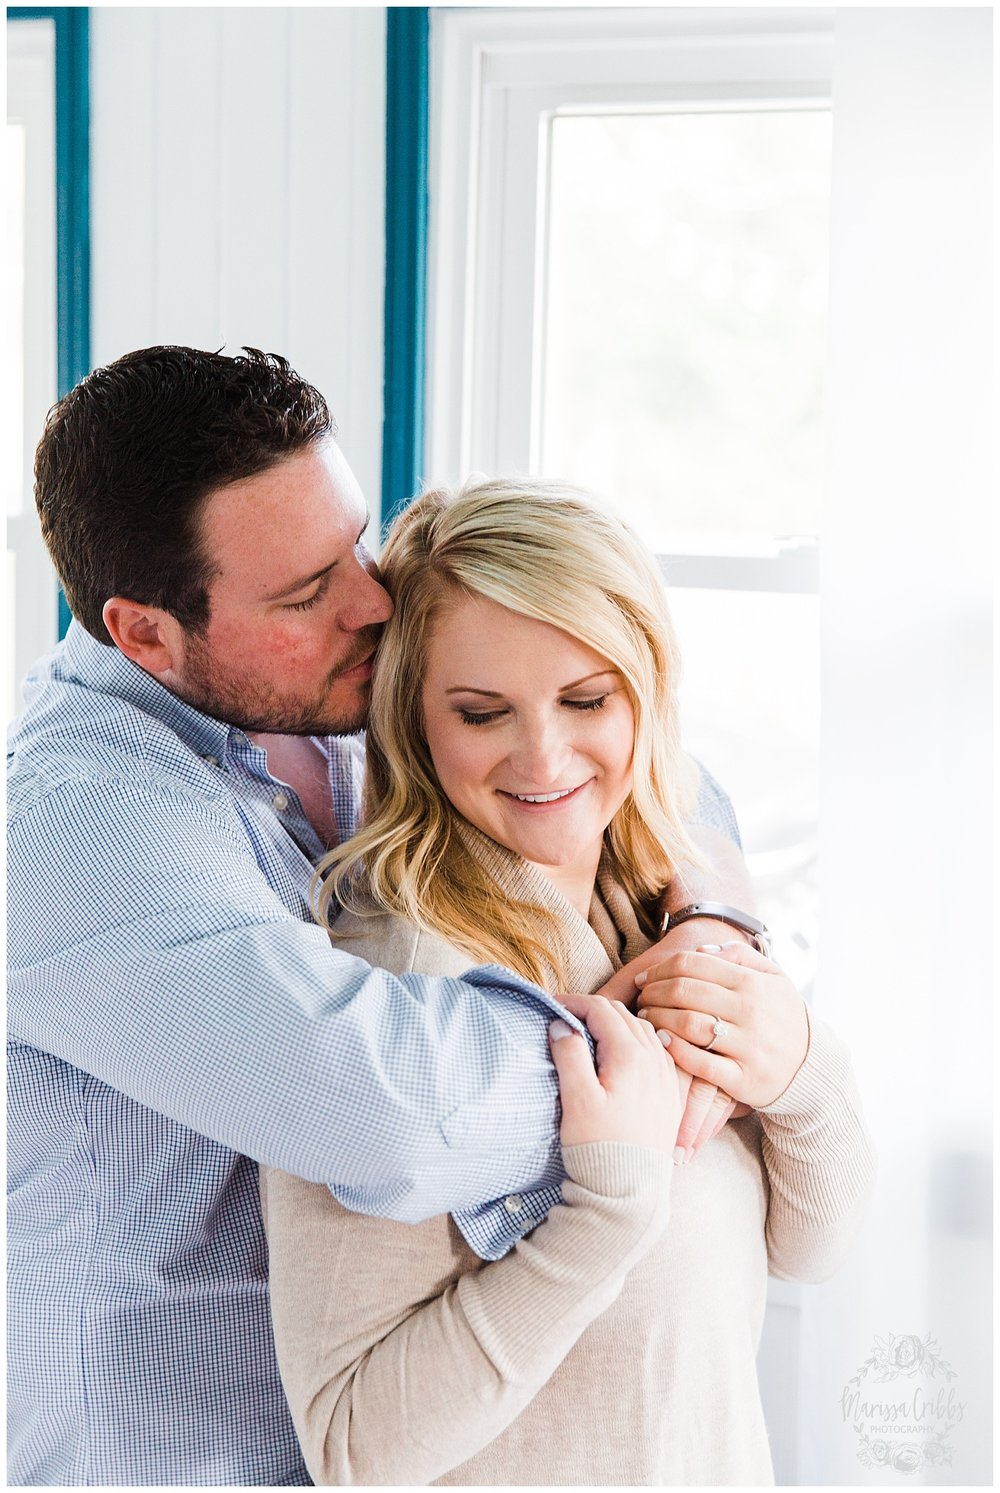 MEGN AND JAMES ENGAGEMENT | MARISSA CRIBBS PHOTOGRAPHY_3505.jpg